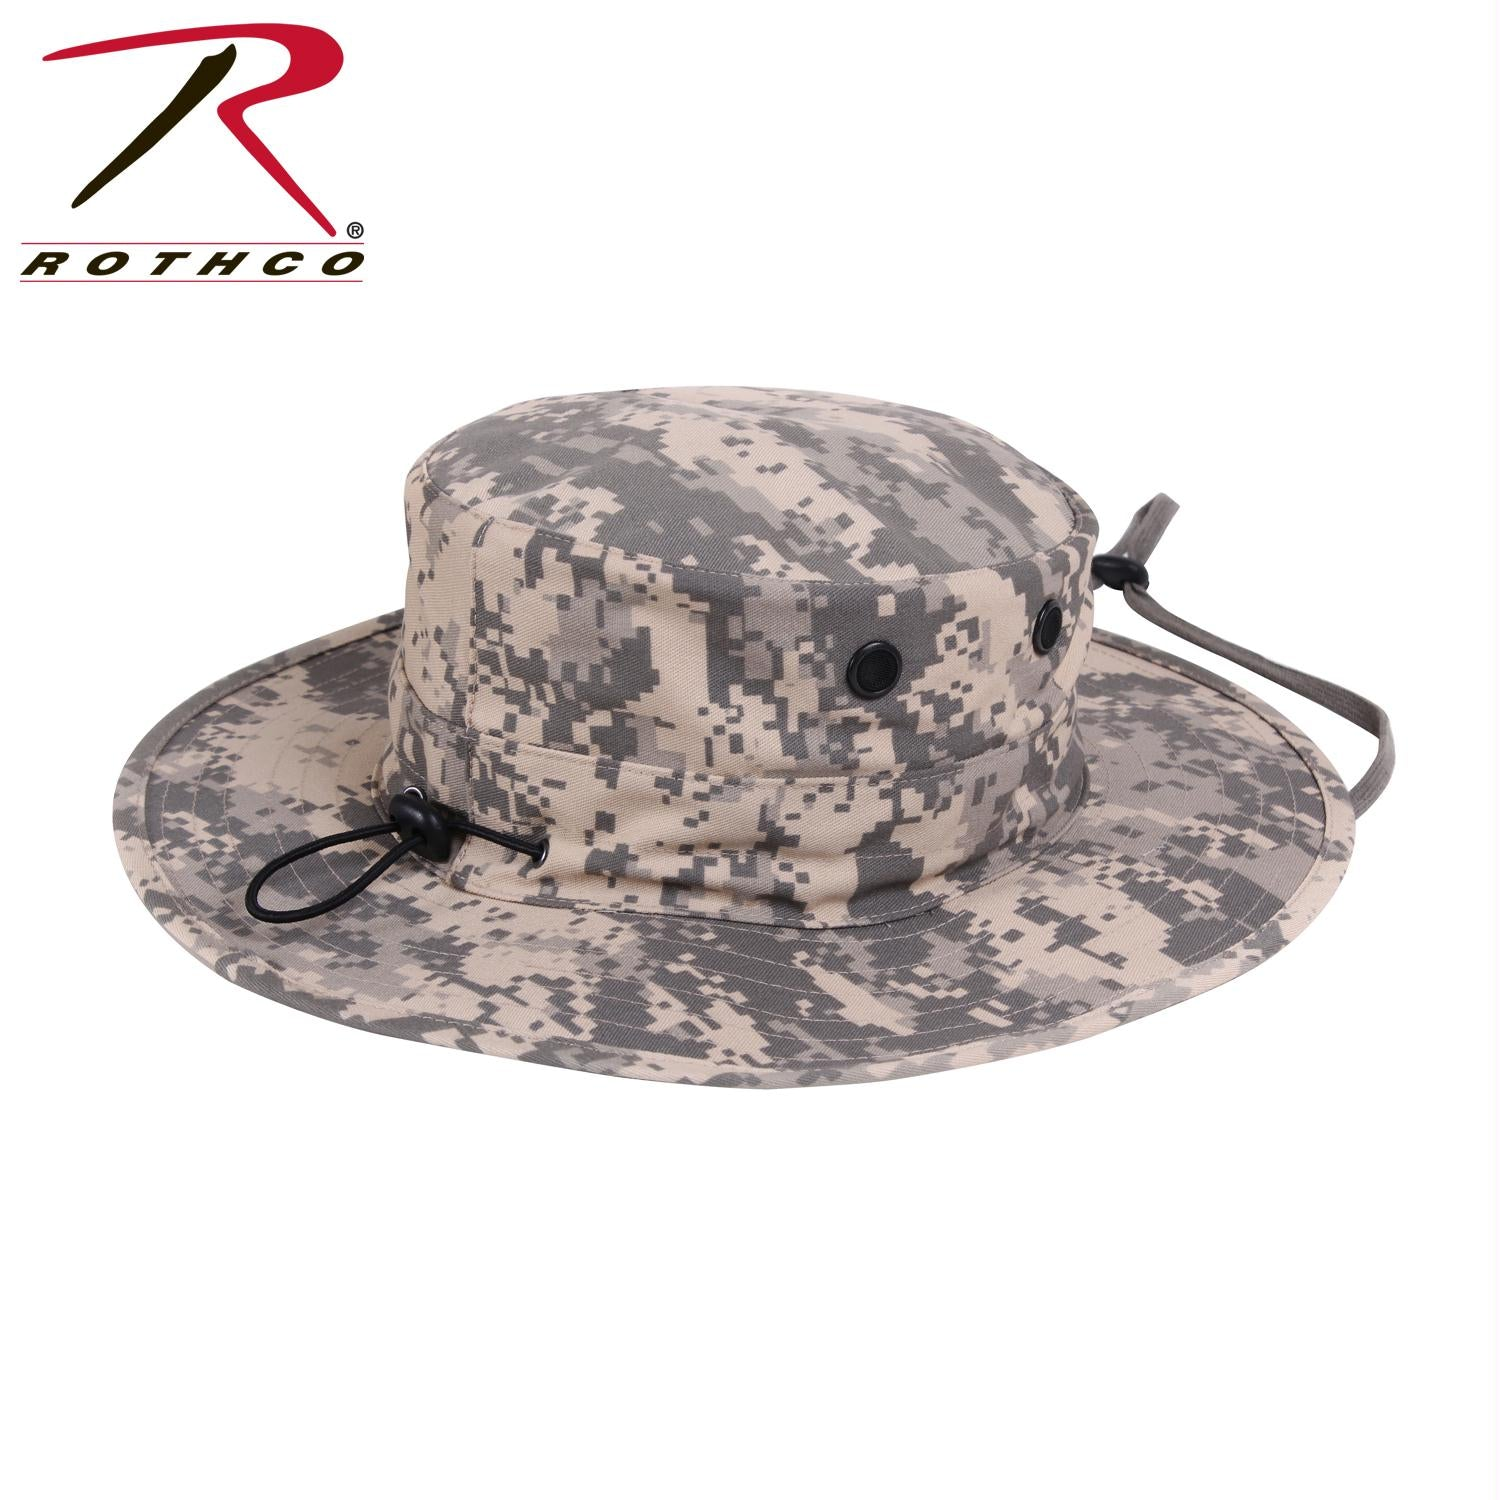 Rothco Adjustable Boonie Hat - ACU Digital Camo / One Size